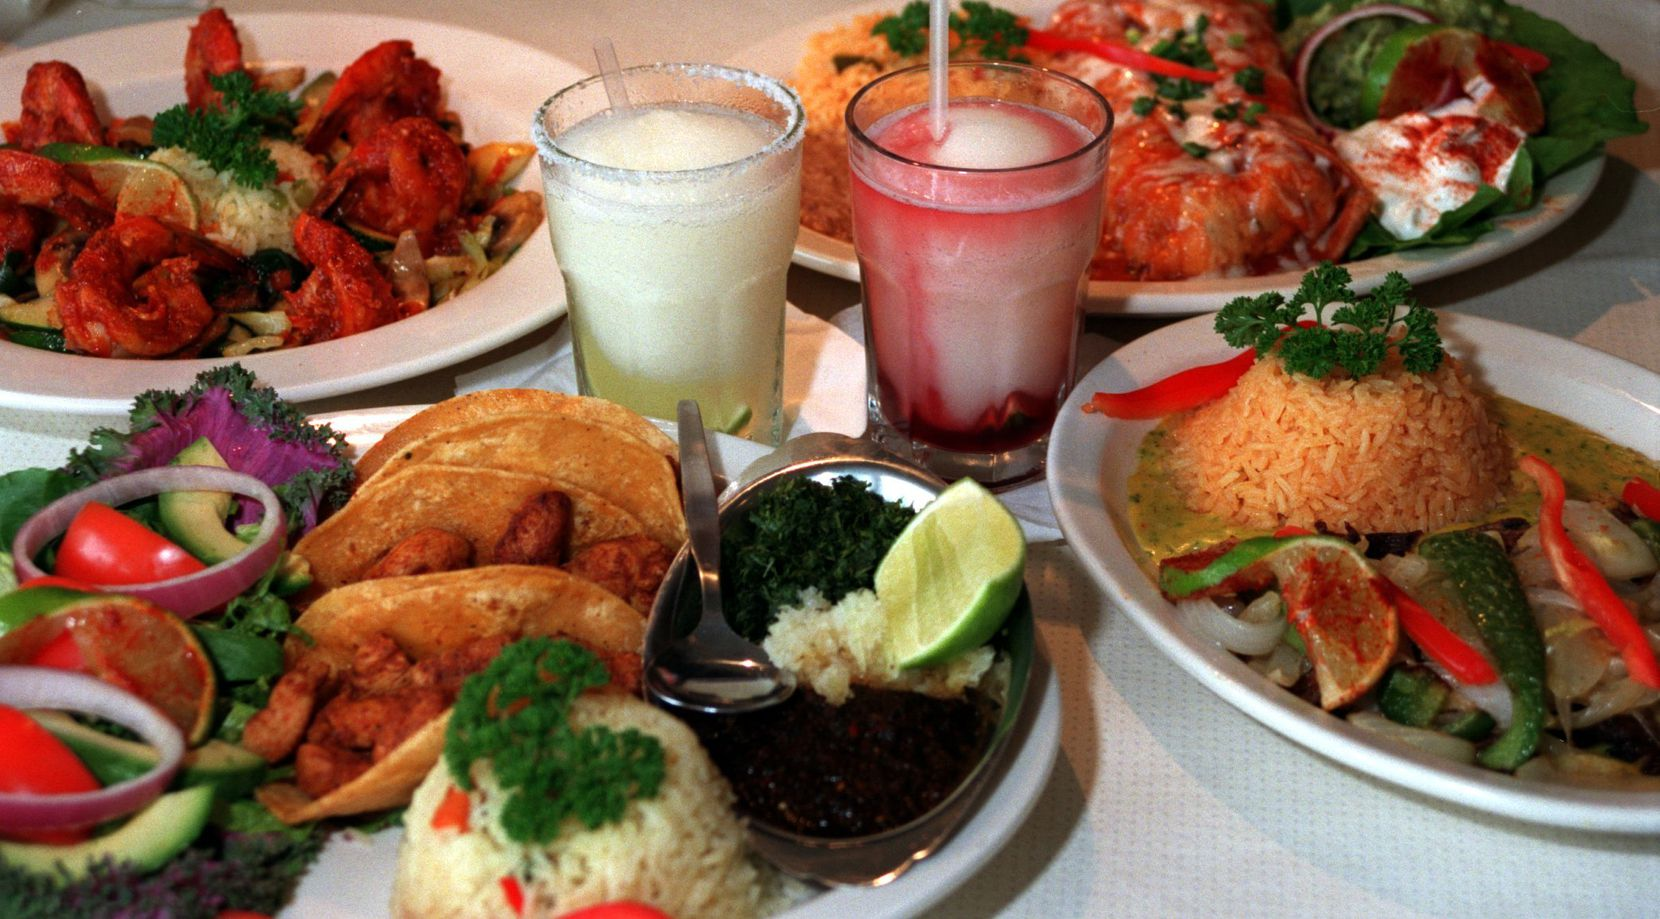 This 1998 file photo shows a smattering of what our critic called 'wonderful Mexican dishes' at Mi Cocina.